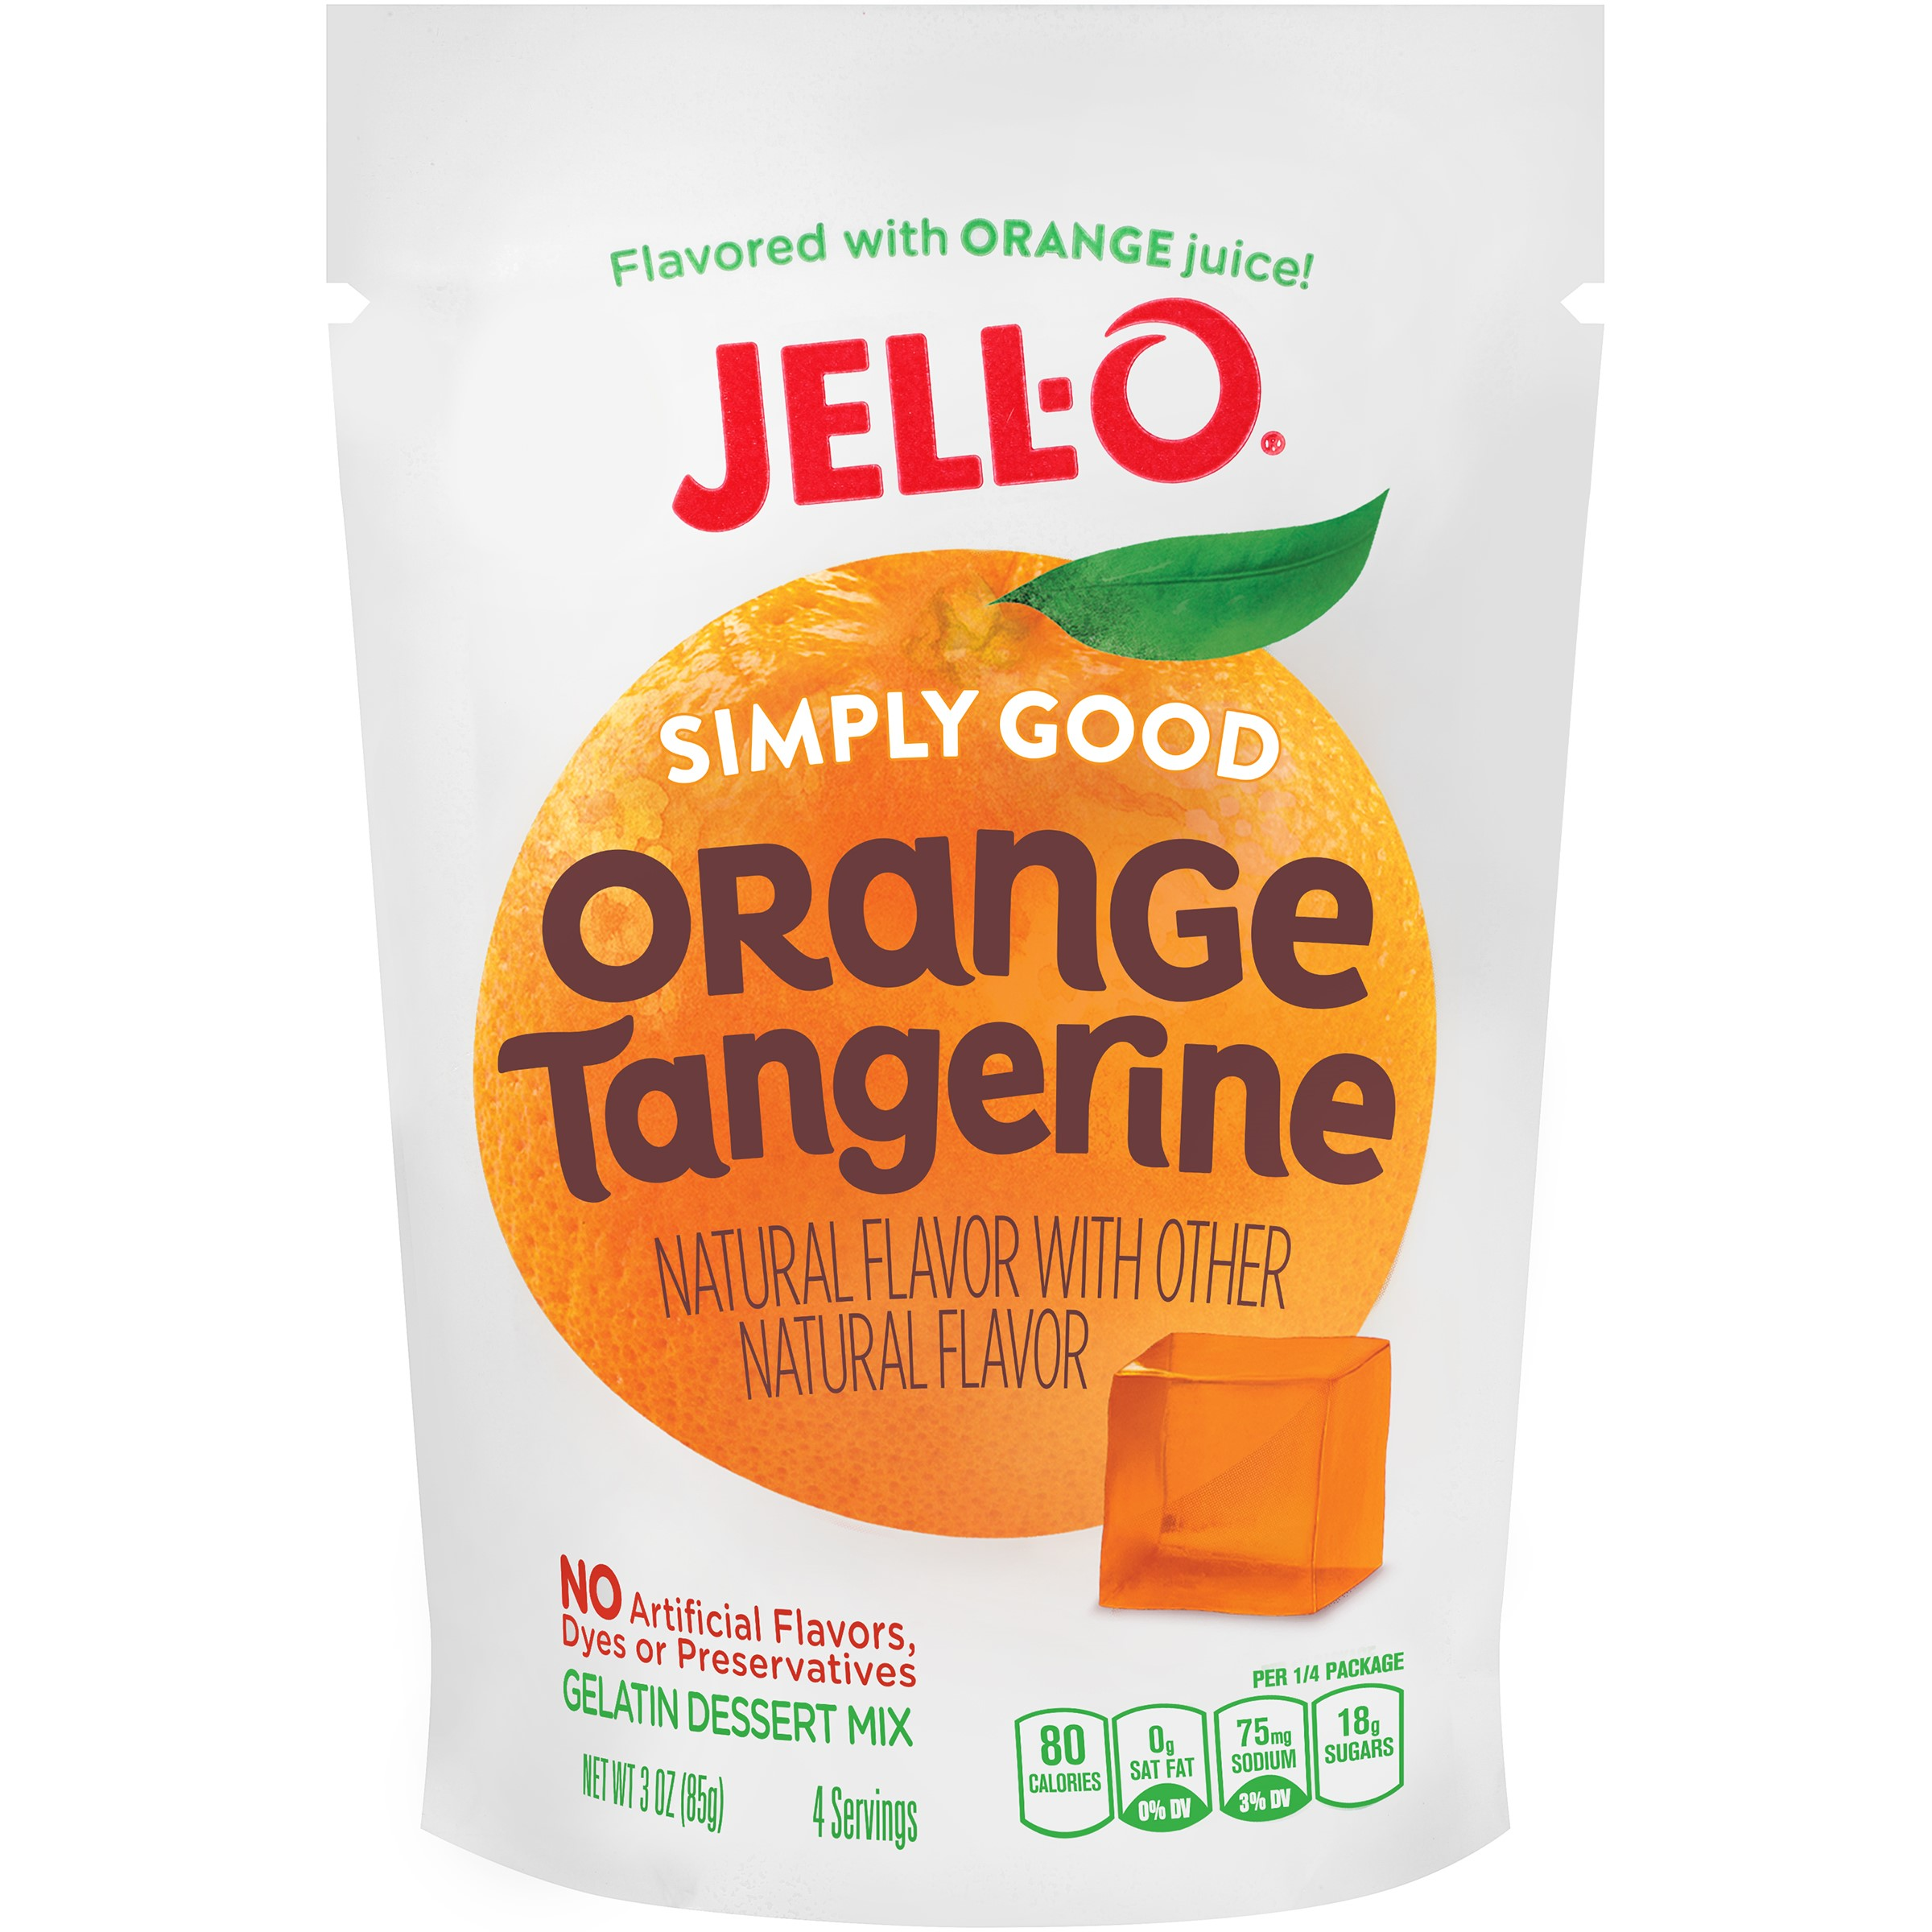 Jell-O Gelatin Dessert Mix Simply Good Orange Tangerine, 3 Oz by Kraft